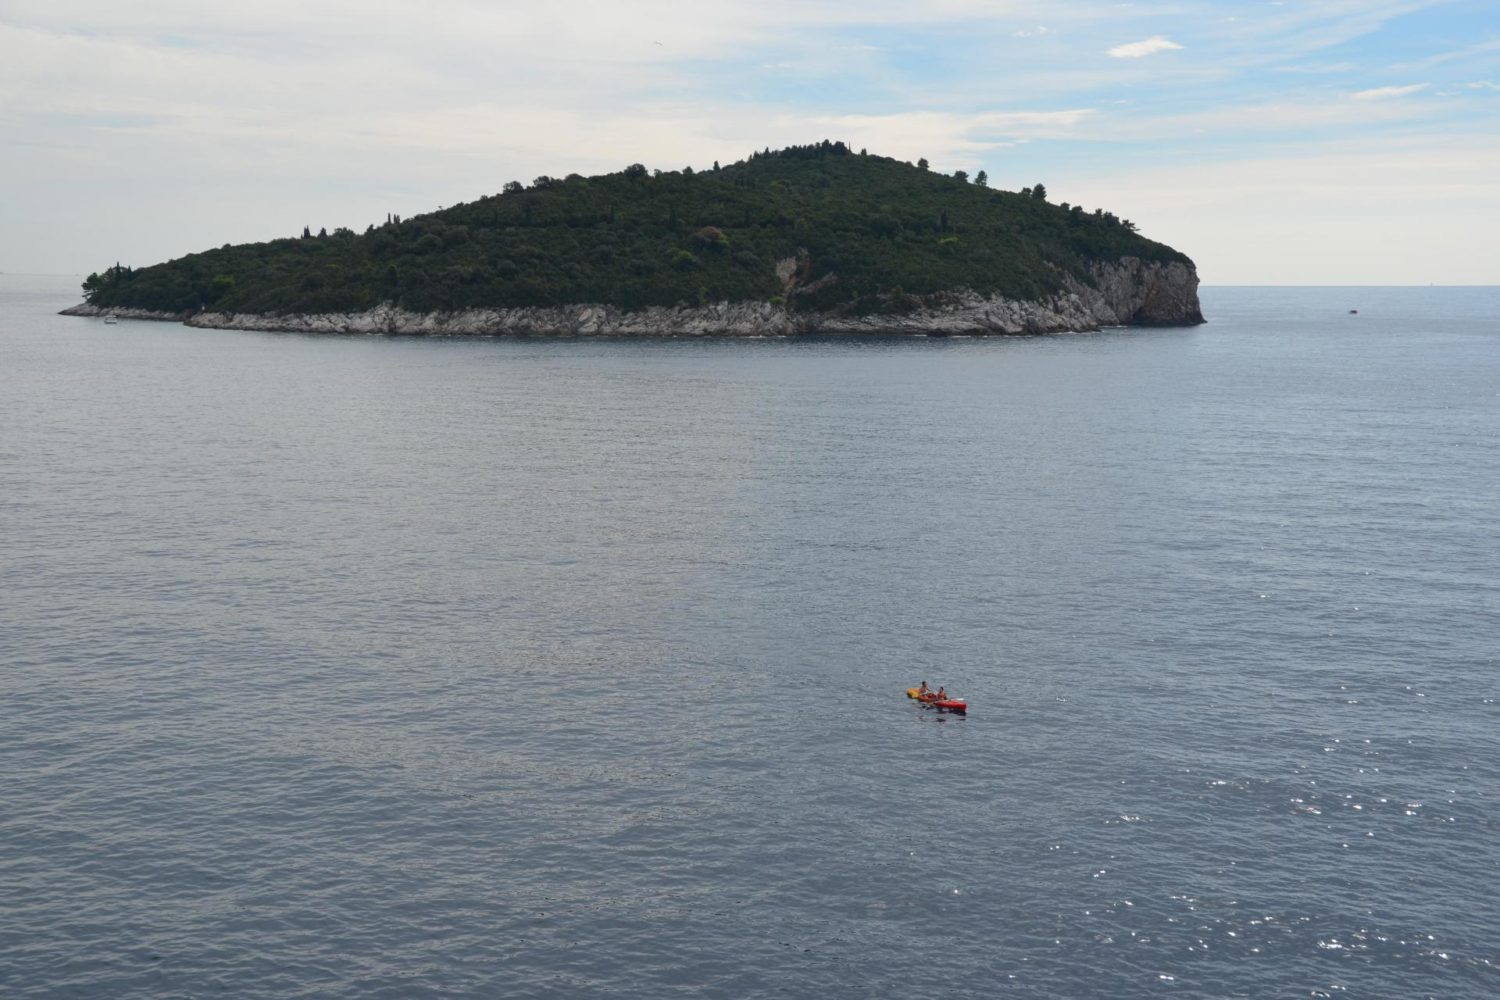 Touring Croatia by boat and kayak with Pure Adventures